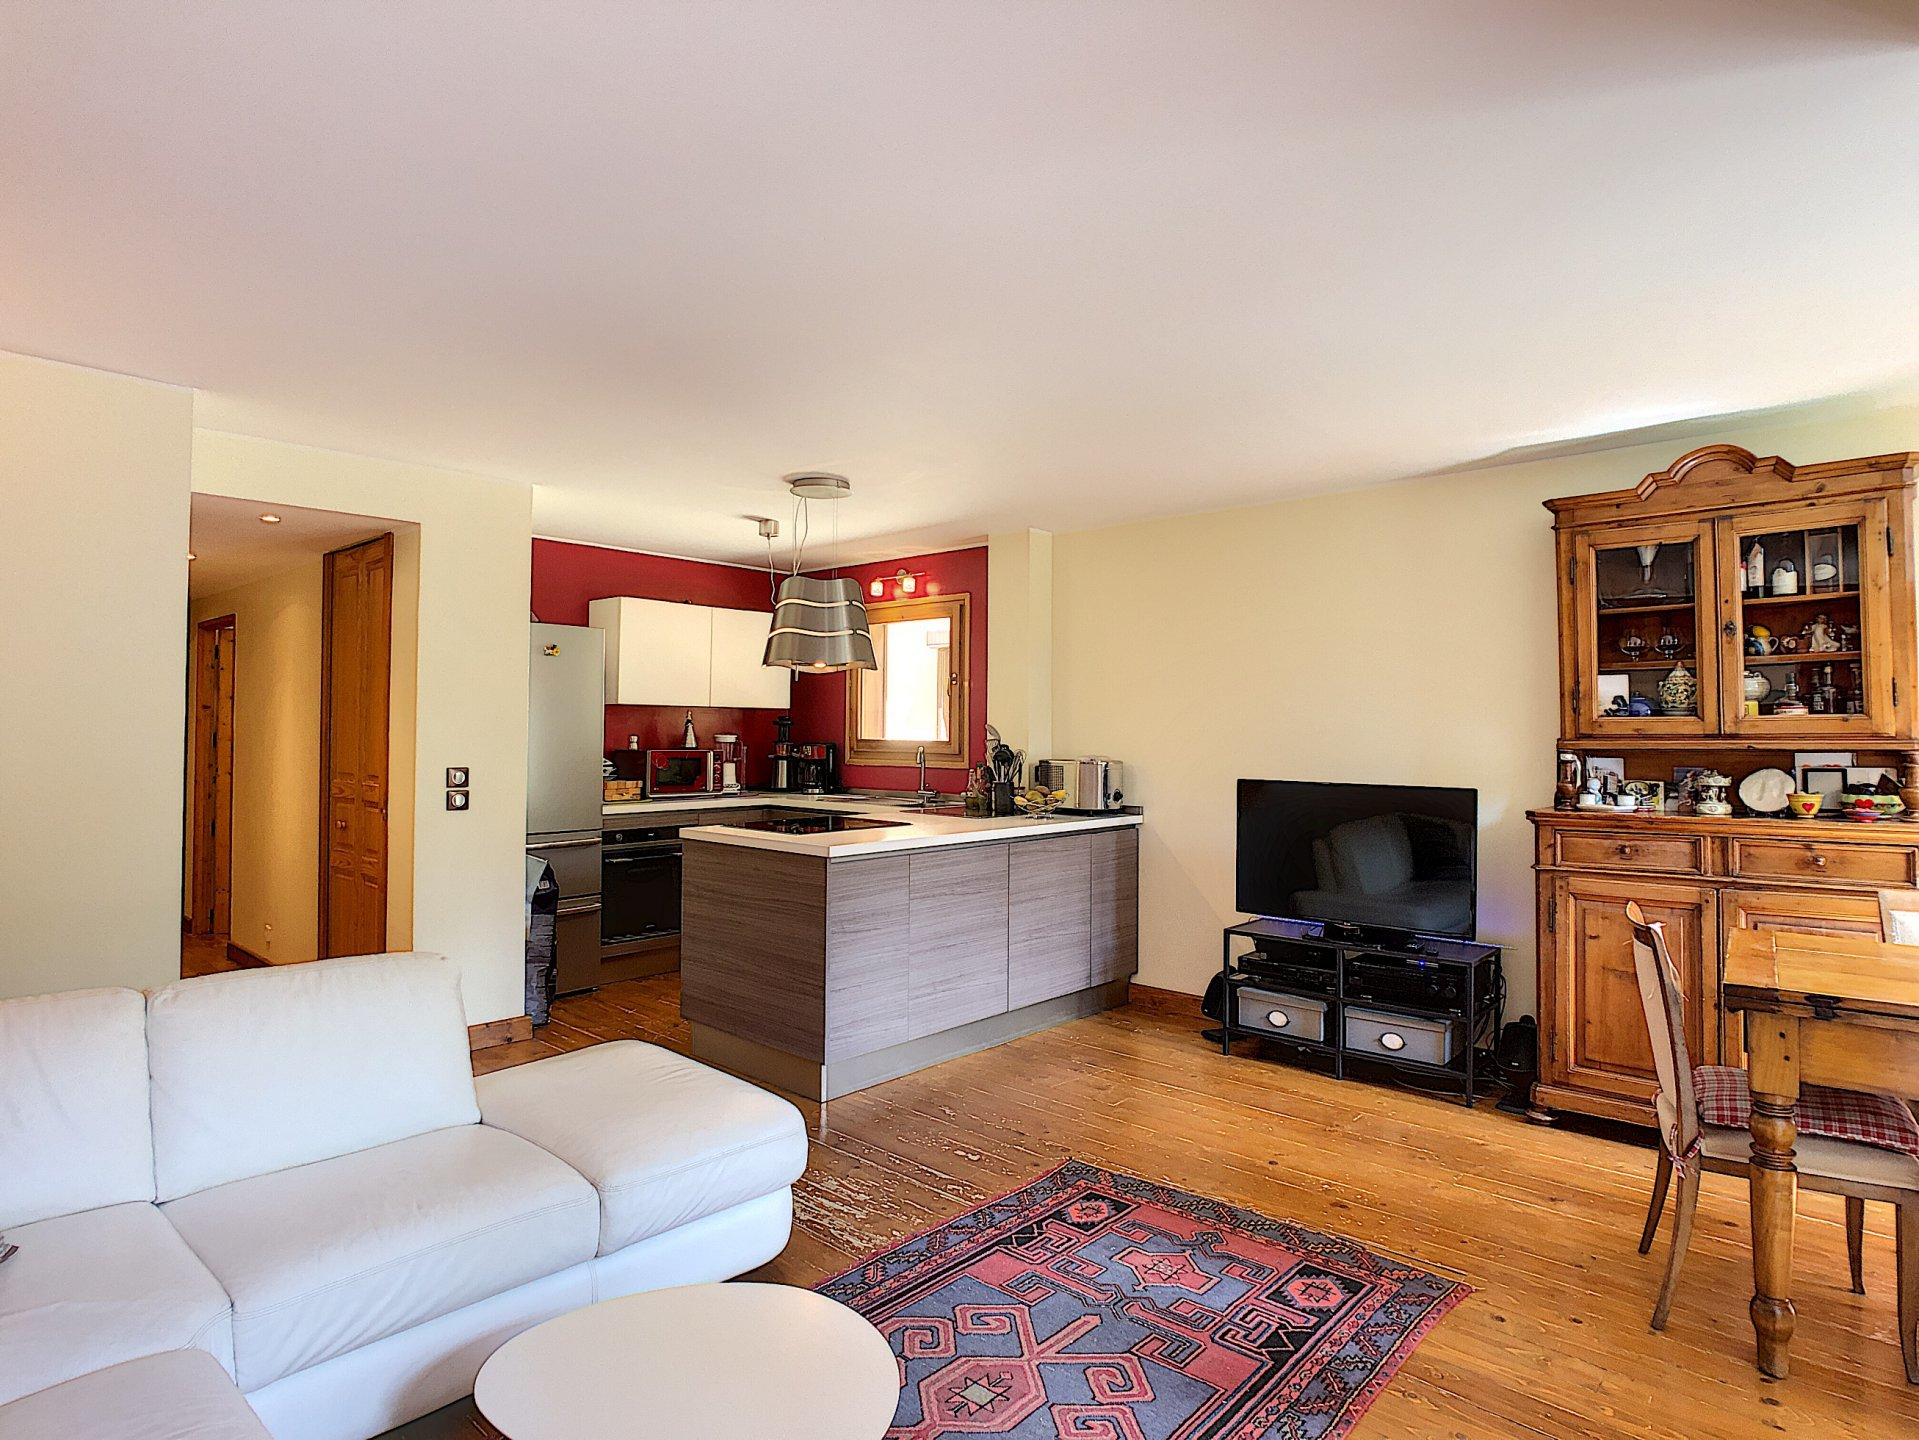 2 bedroom apartment, Chamonix-Mont-Blanc